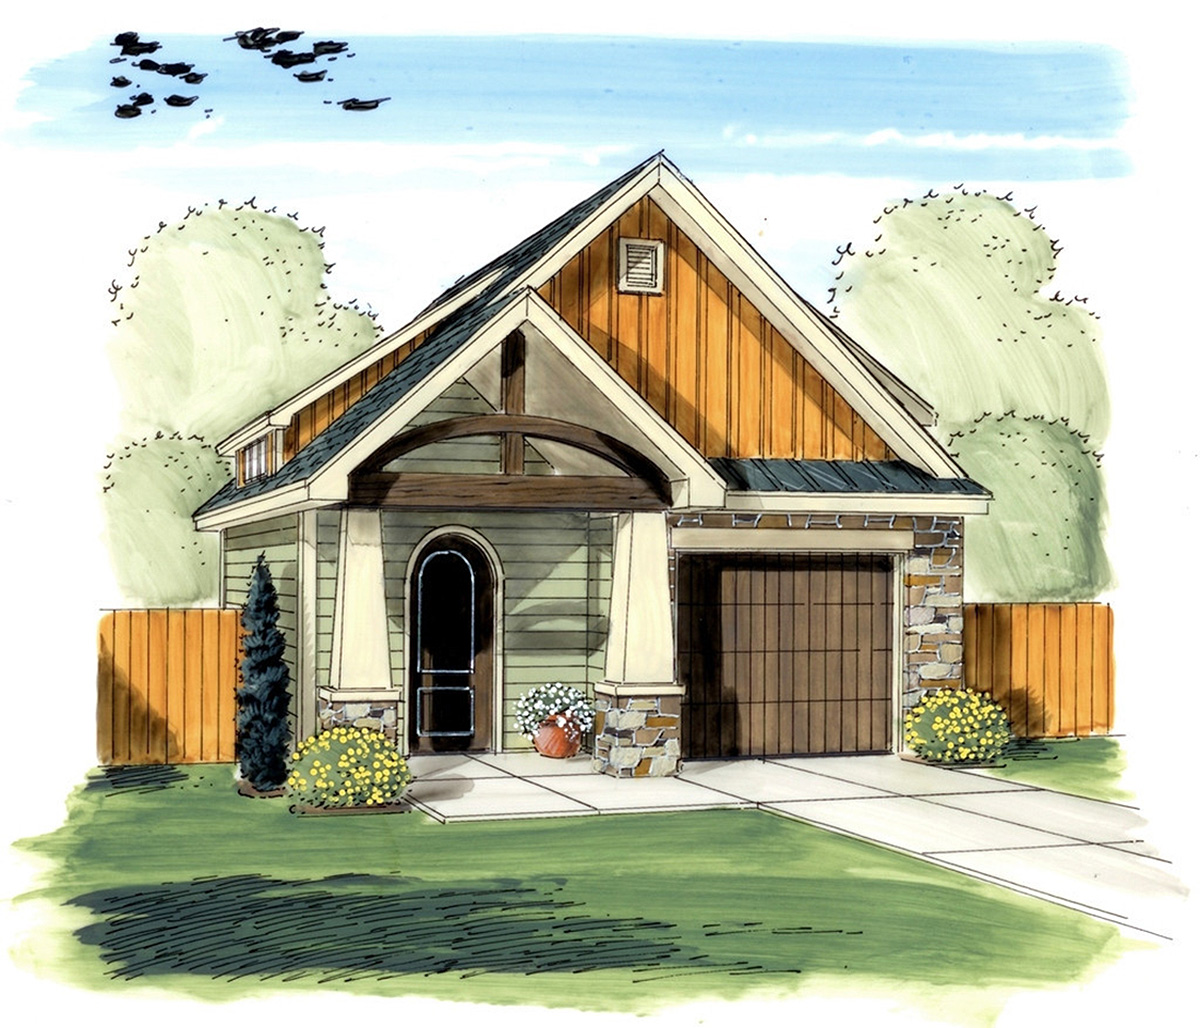 Garage Design Architecture: Craftsman Garage With Man Door - 62572DJ